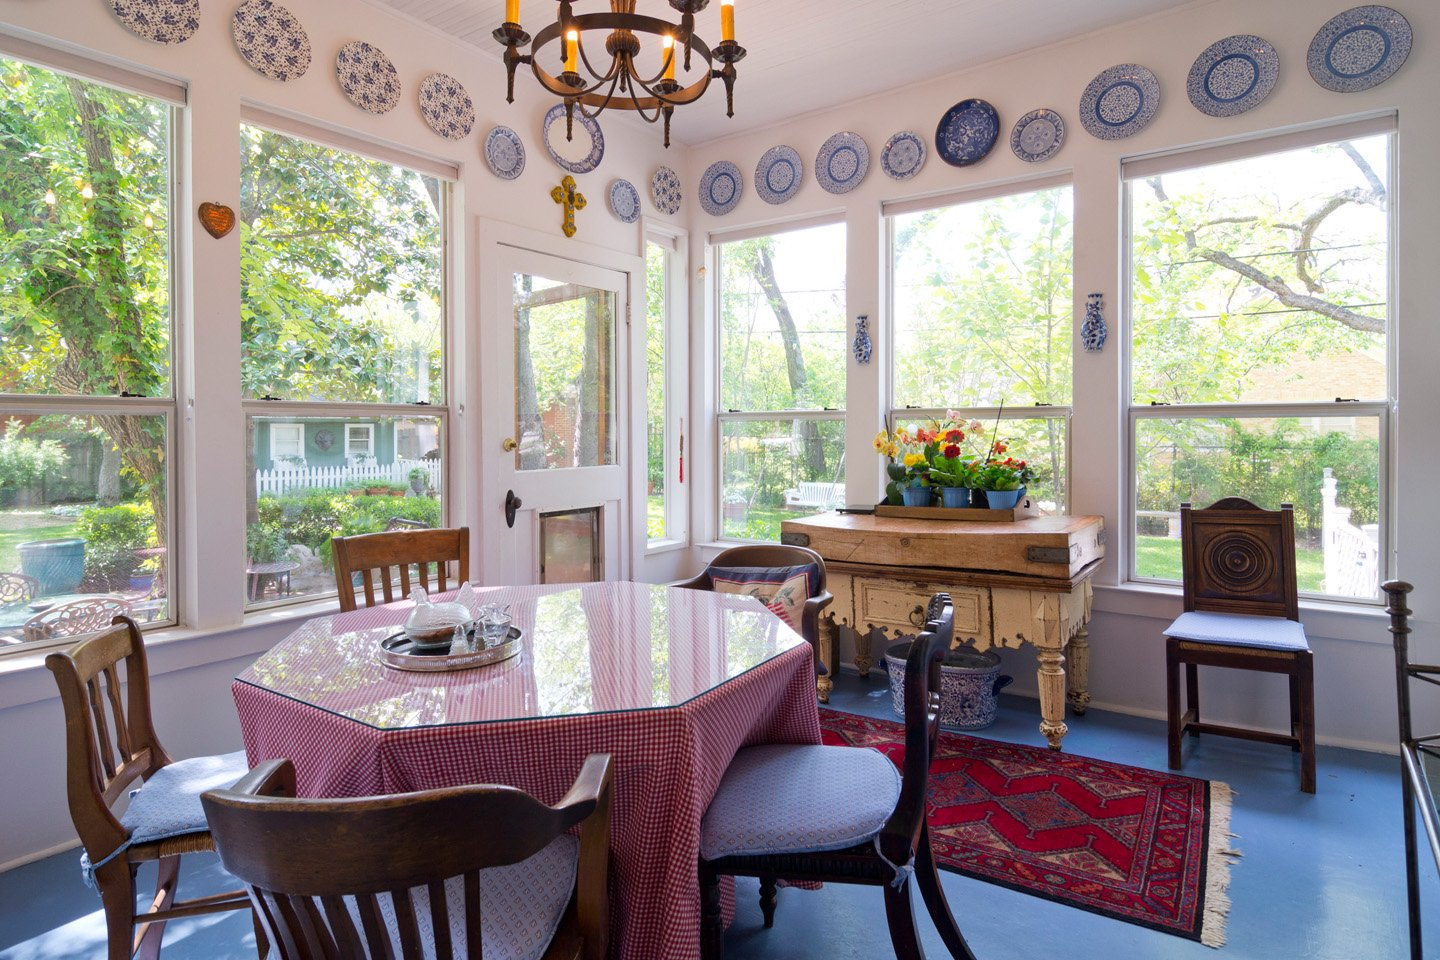 This Beautiful B&B Could Be Yours